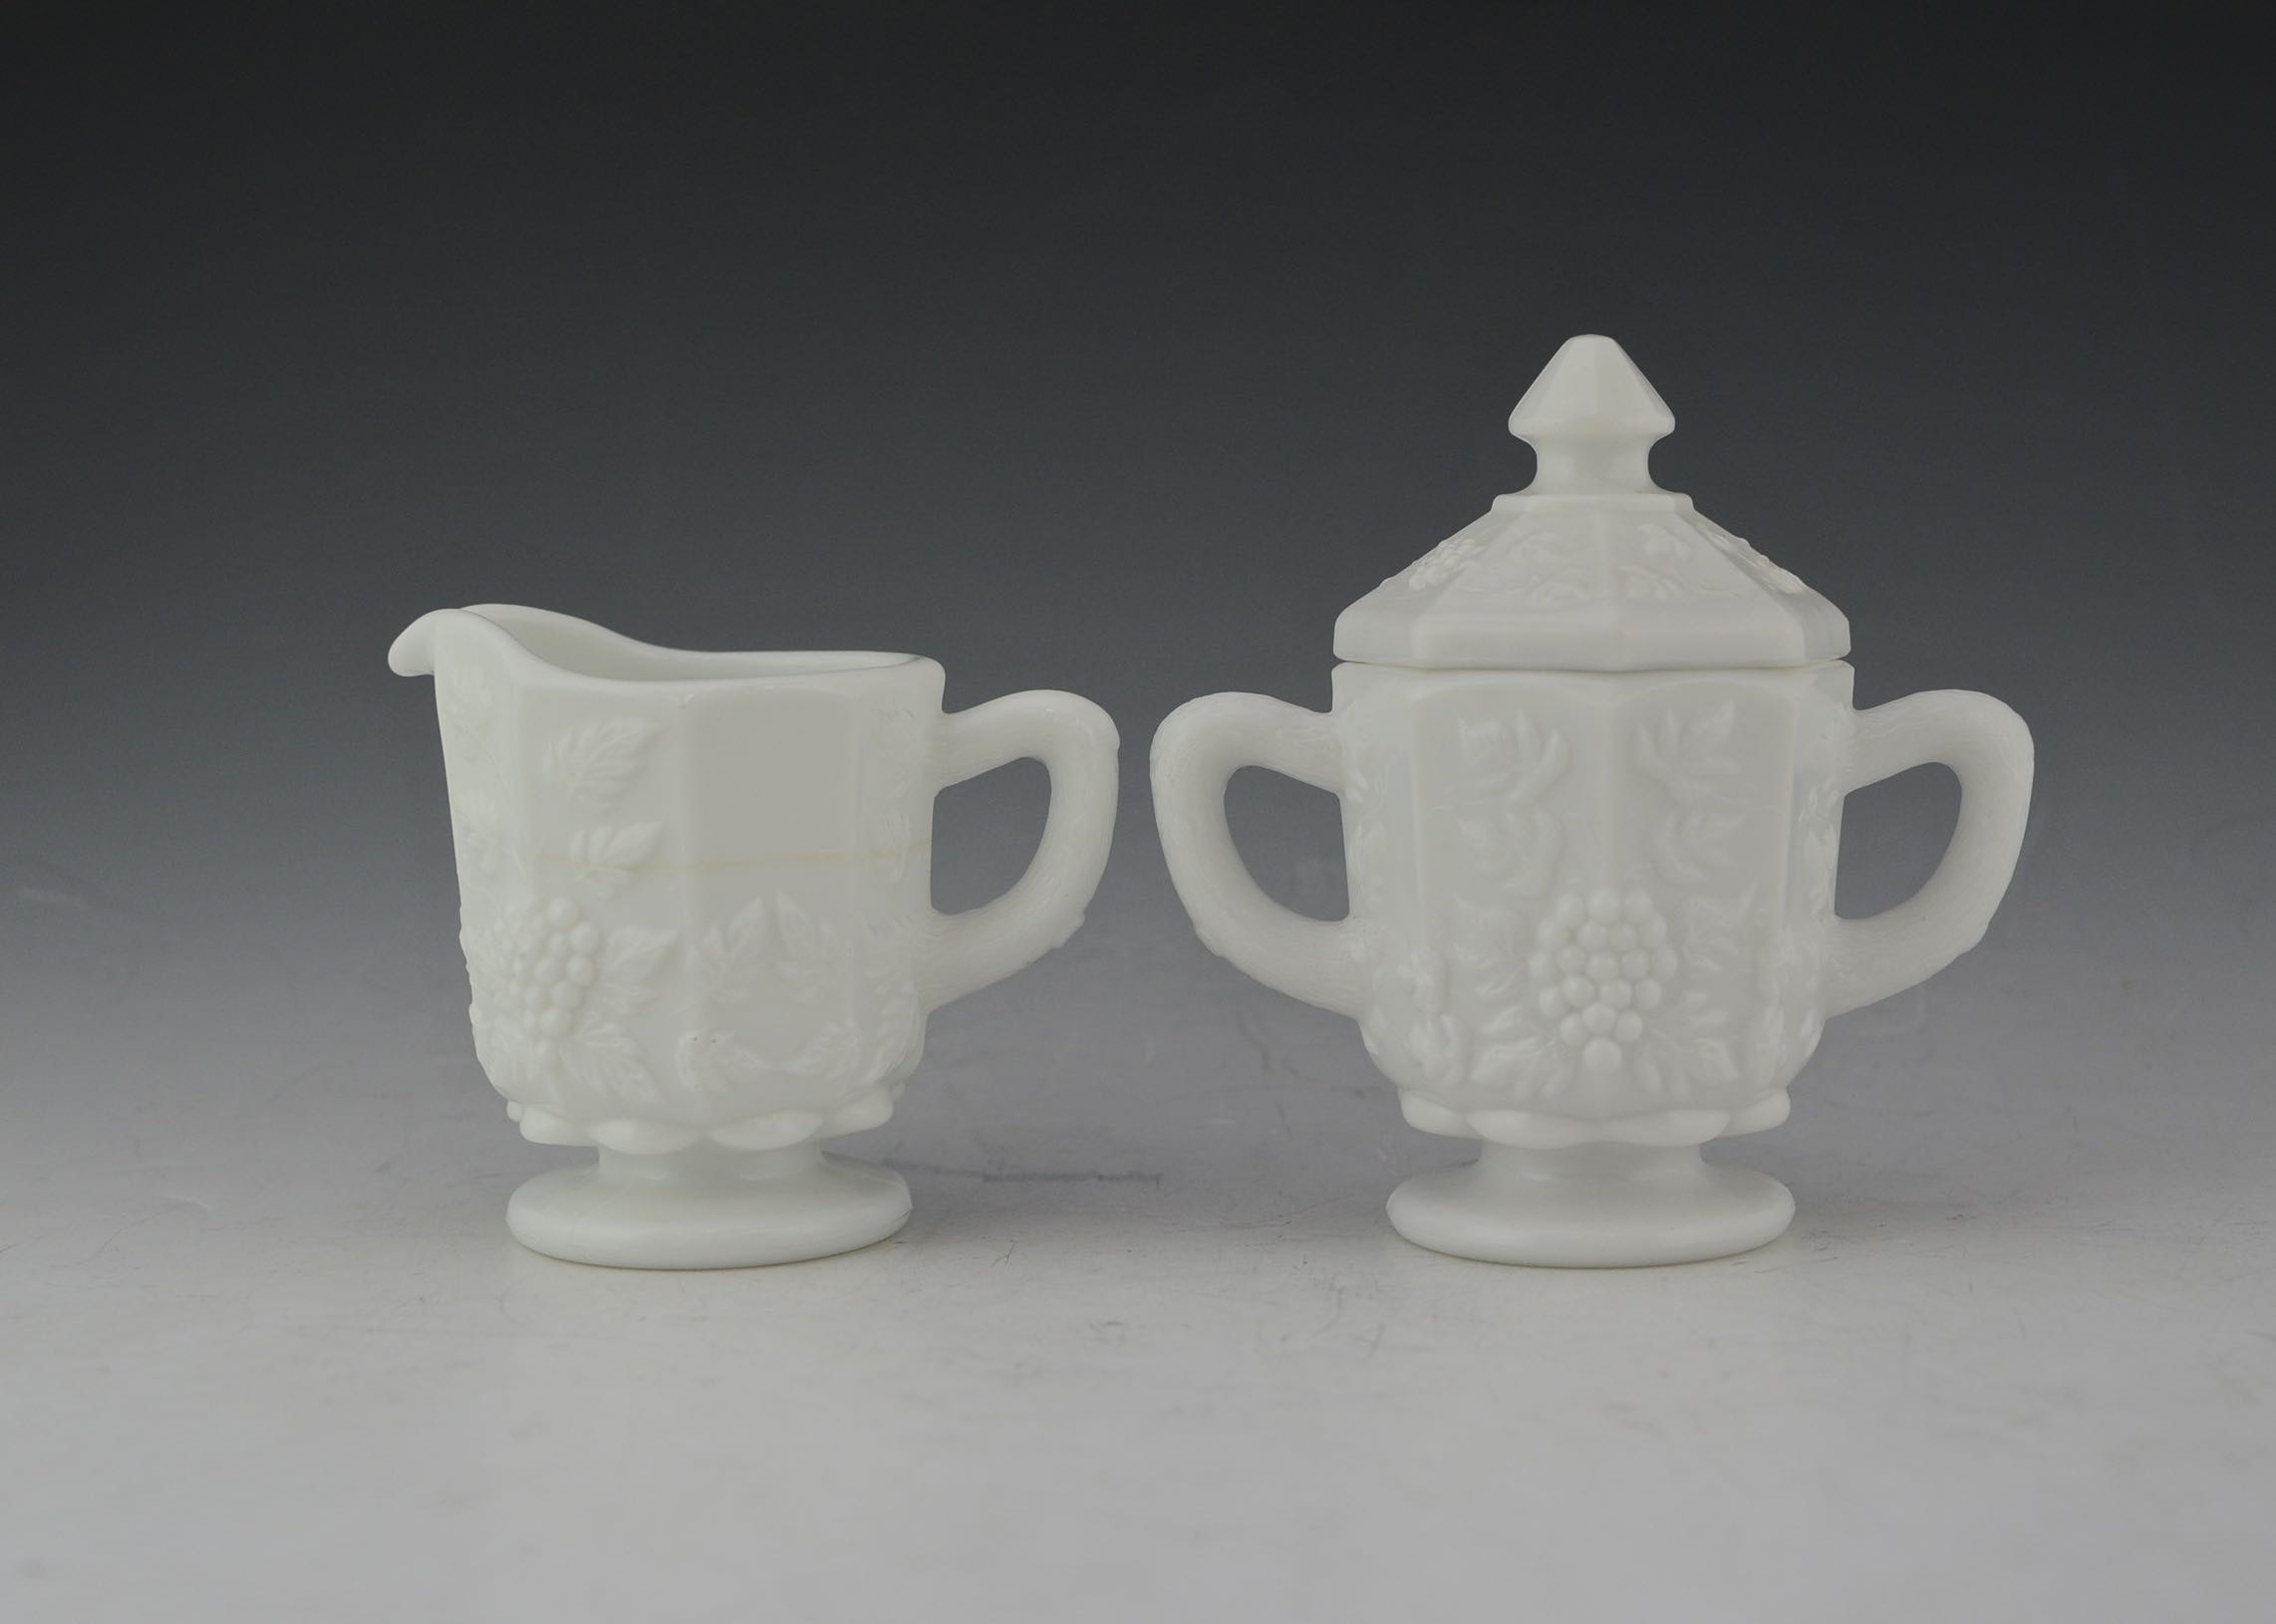 Vintage Westmoreland Milk Glass Creamer and Sugar Bowl